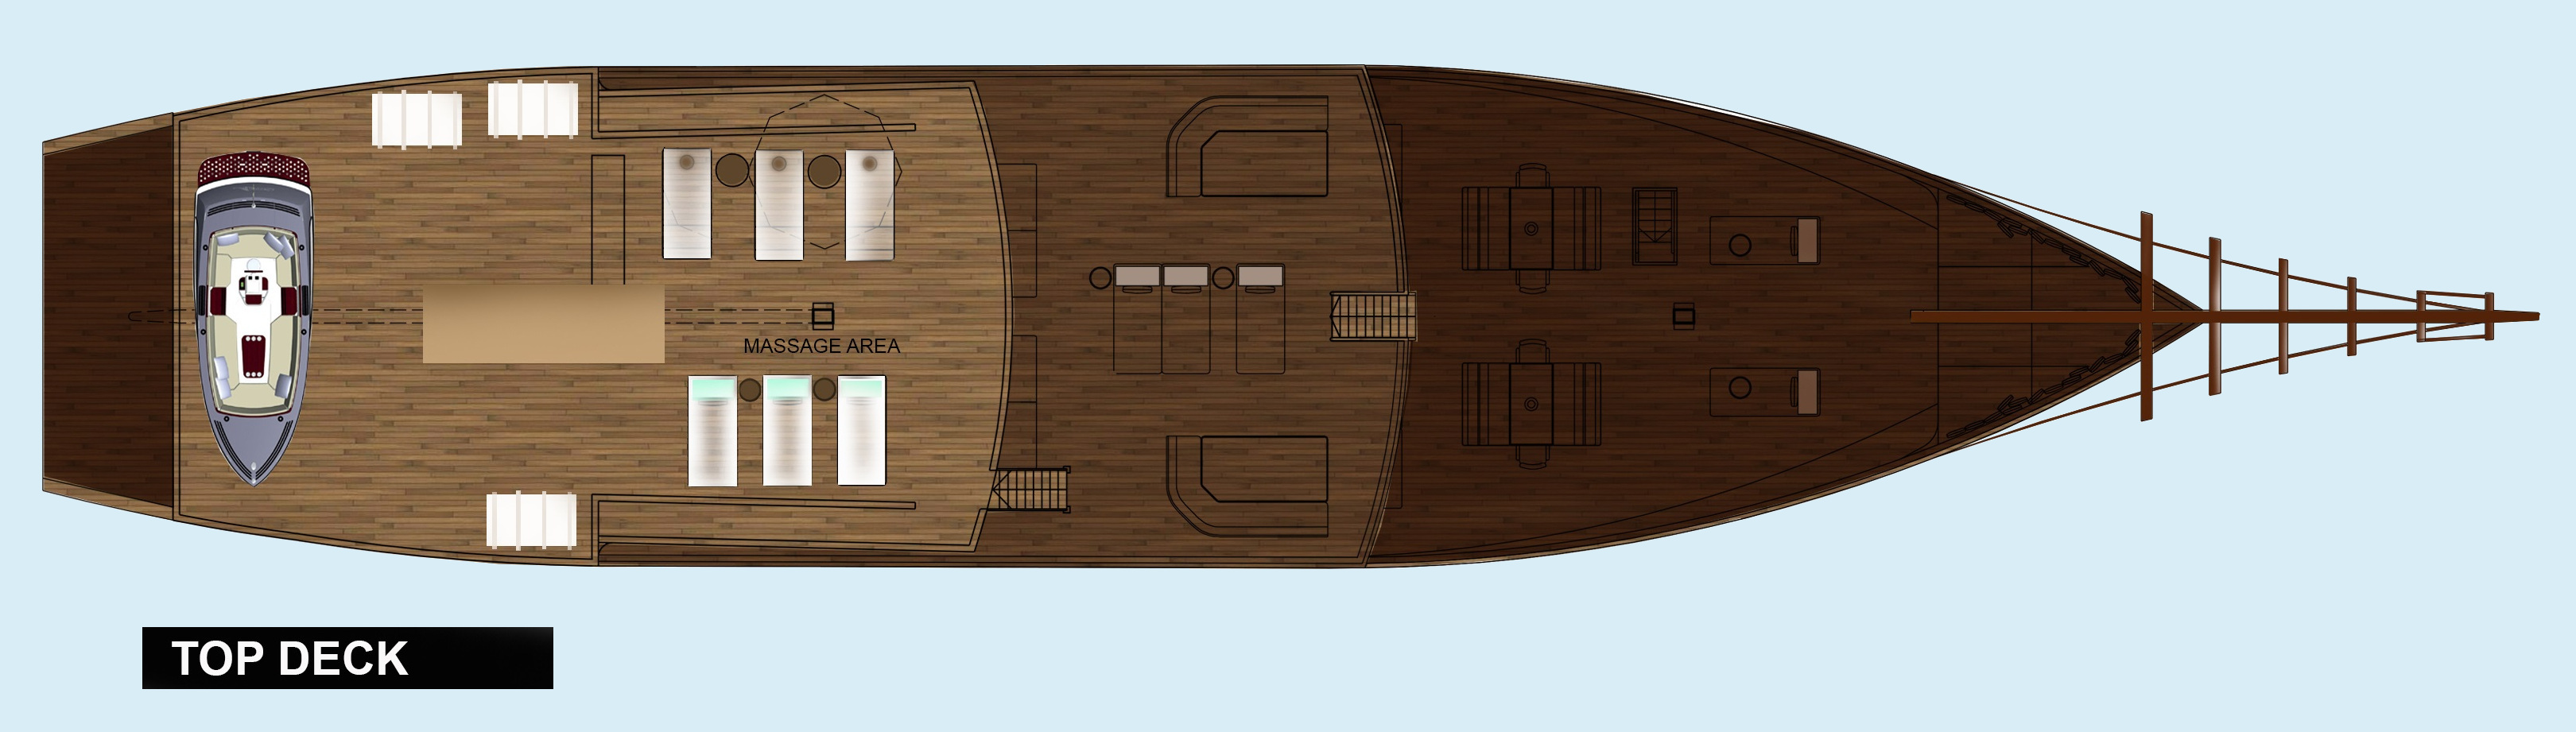 The layout plan of the top deck of our Coralia Liveaboard in Indonesia